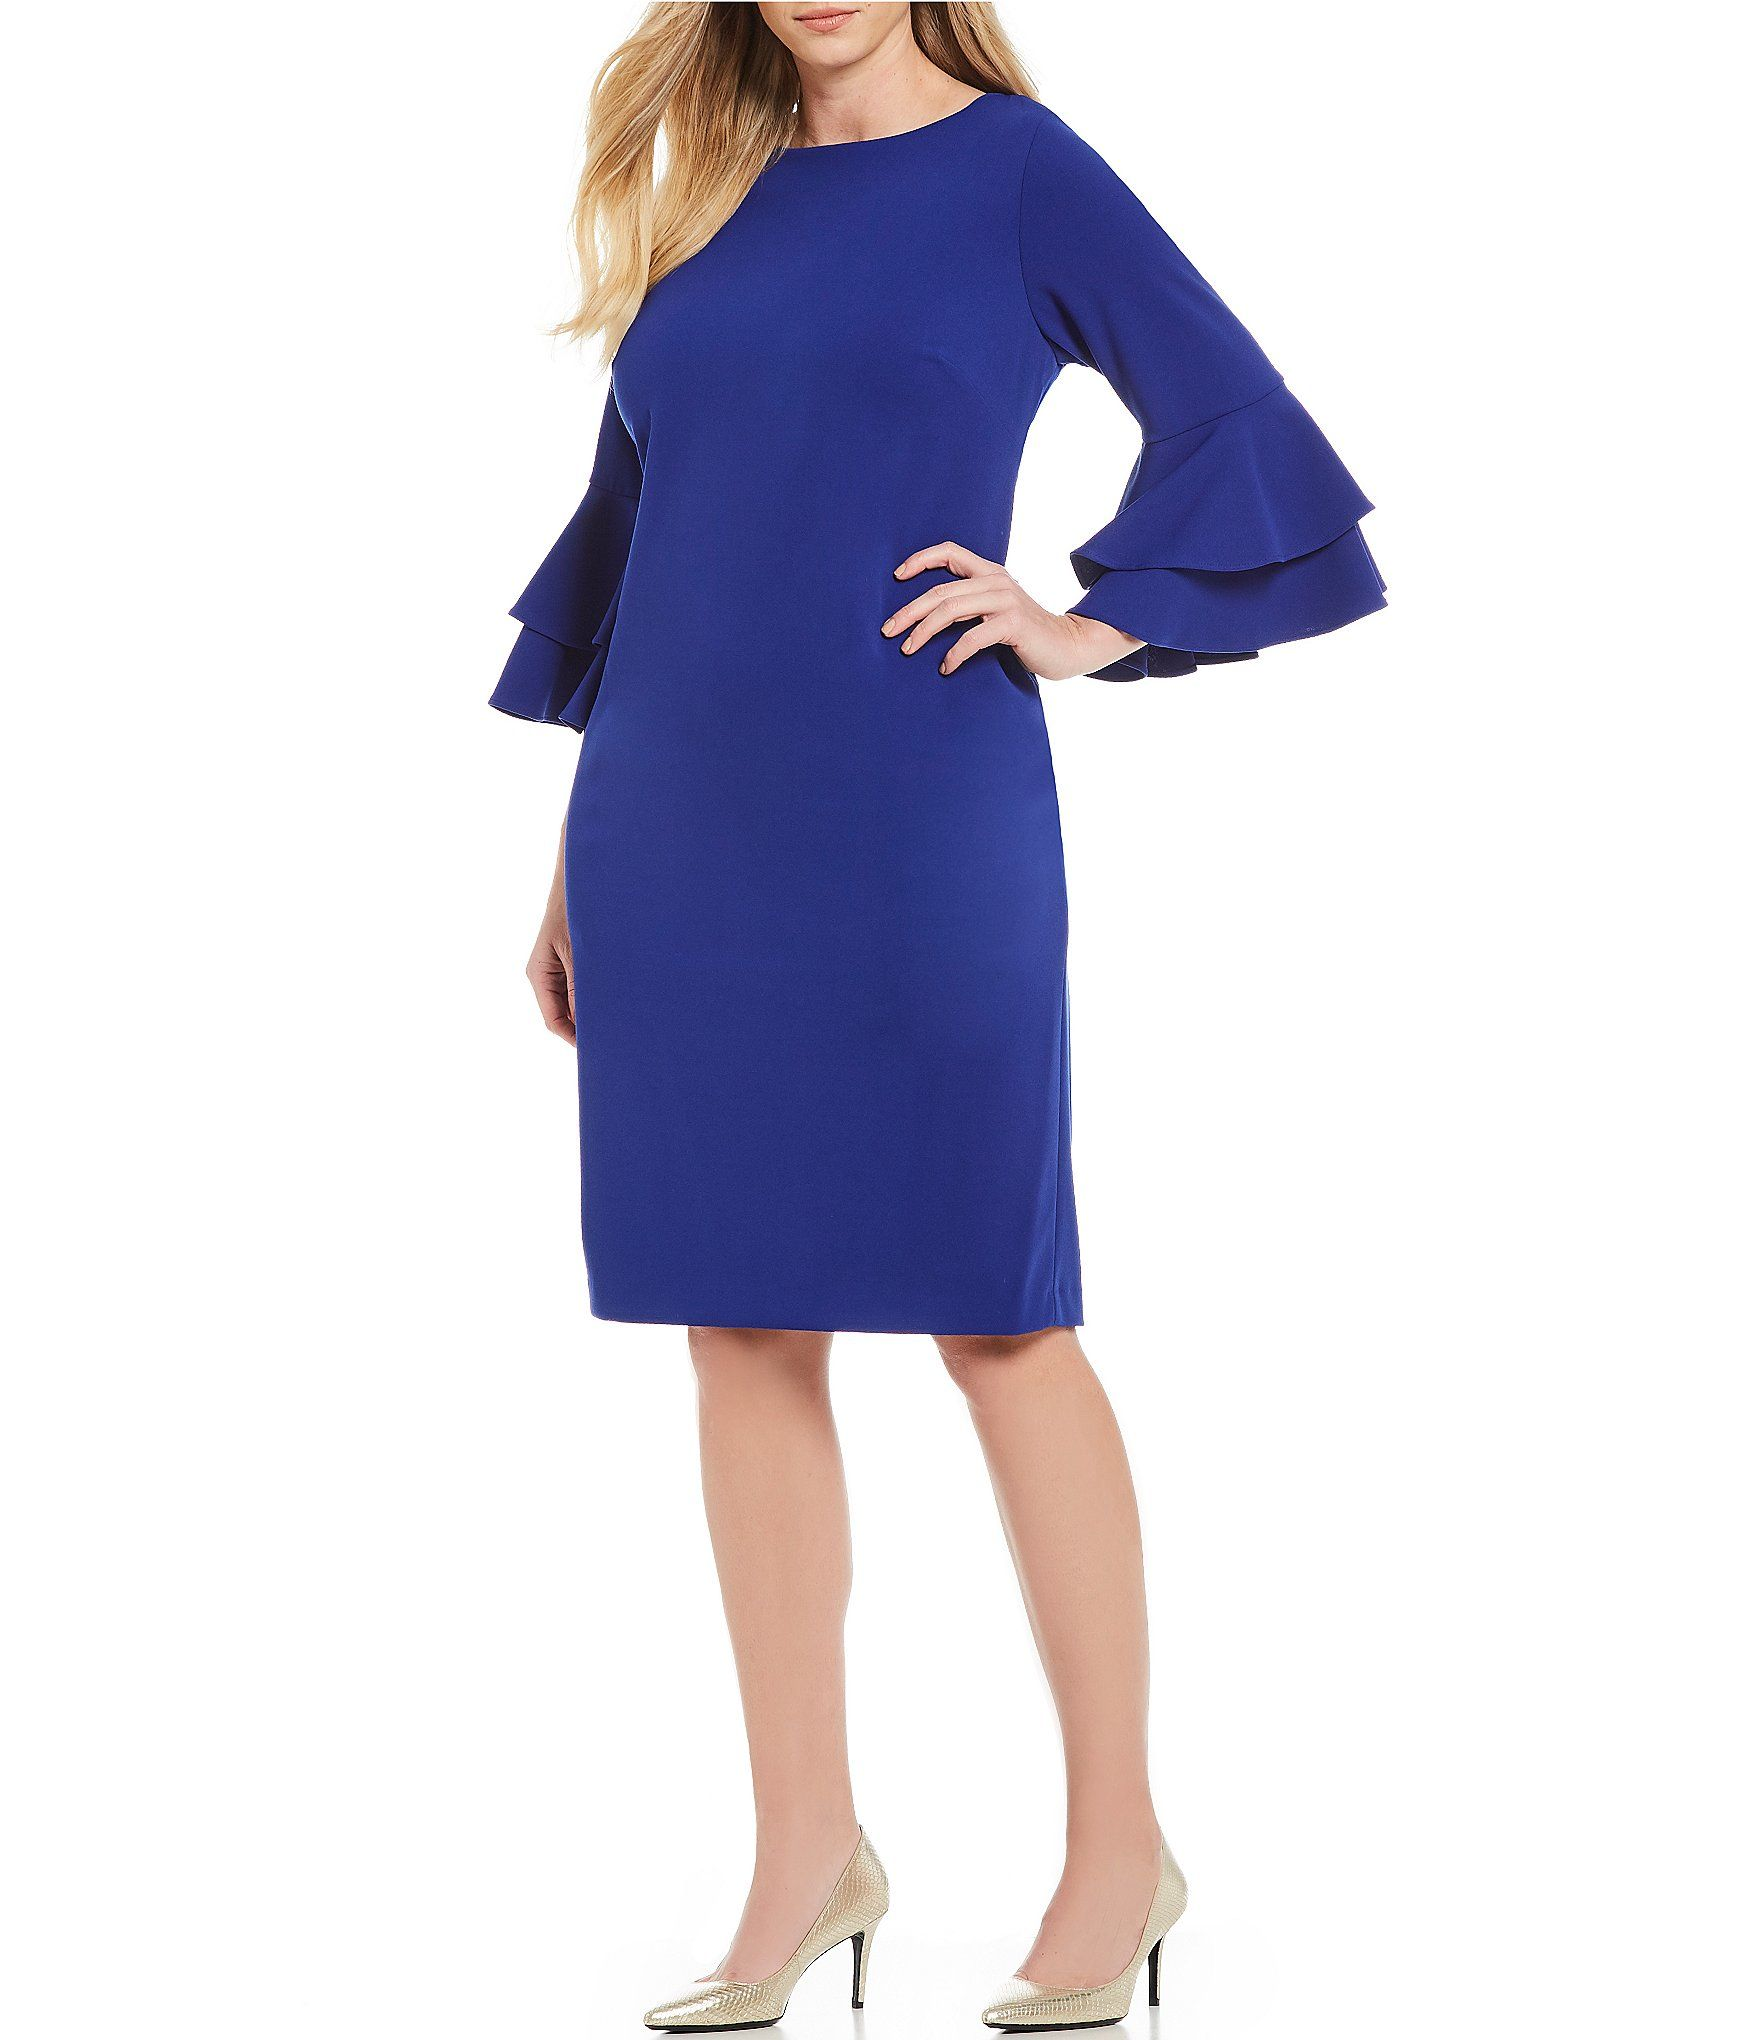 21a7a3bed28 Shop for Calvin Klein Plus Size Tiered Bell Sleeve Sheath Dress at Dillards.com.  Visit Dillards.com to find clothing